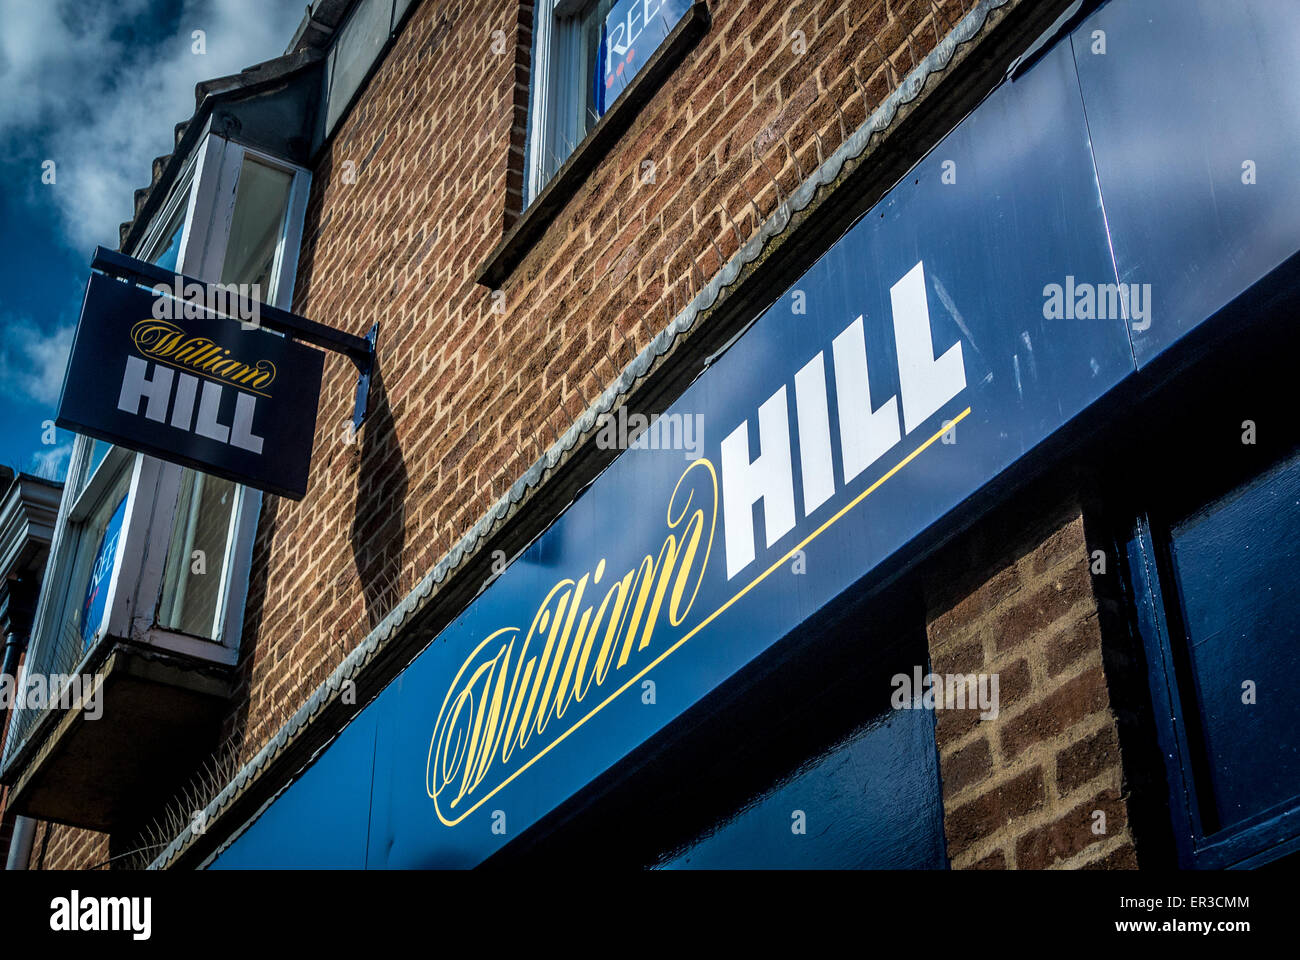 William Hill betting shop sign - Stock Image